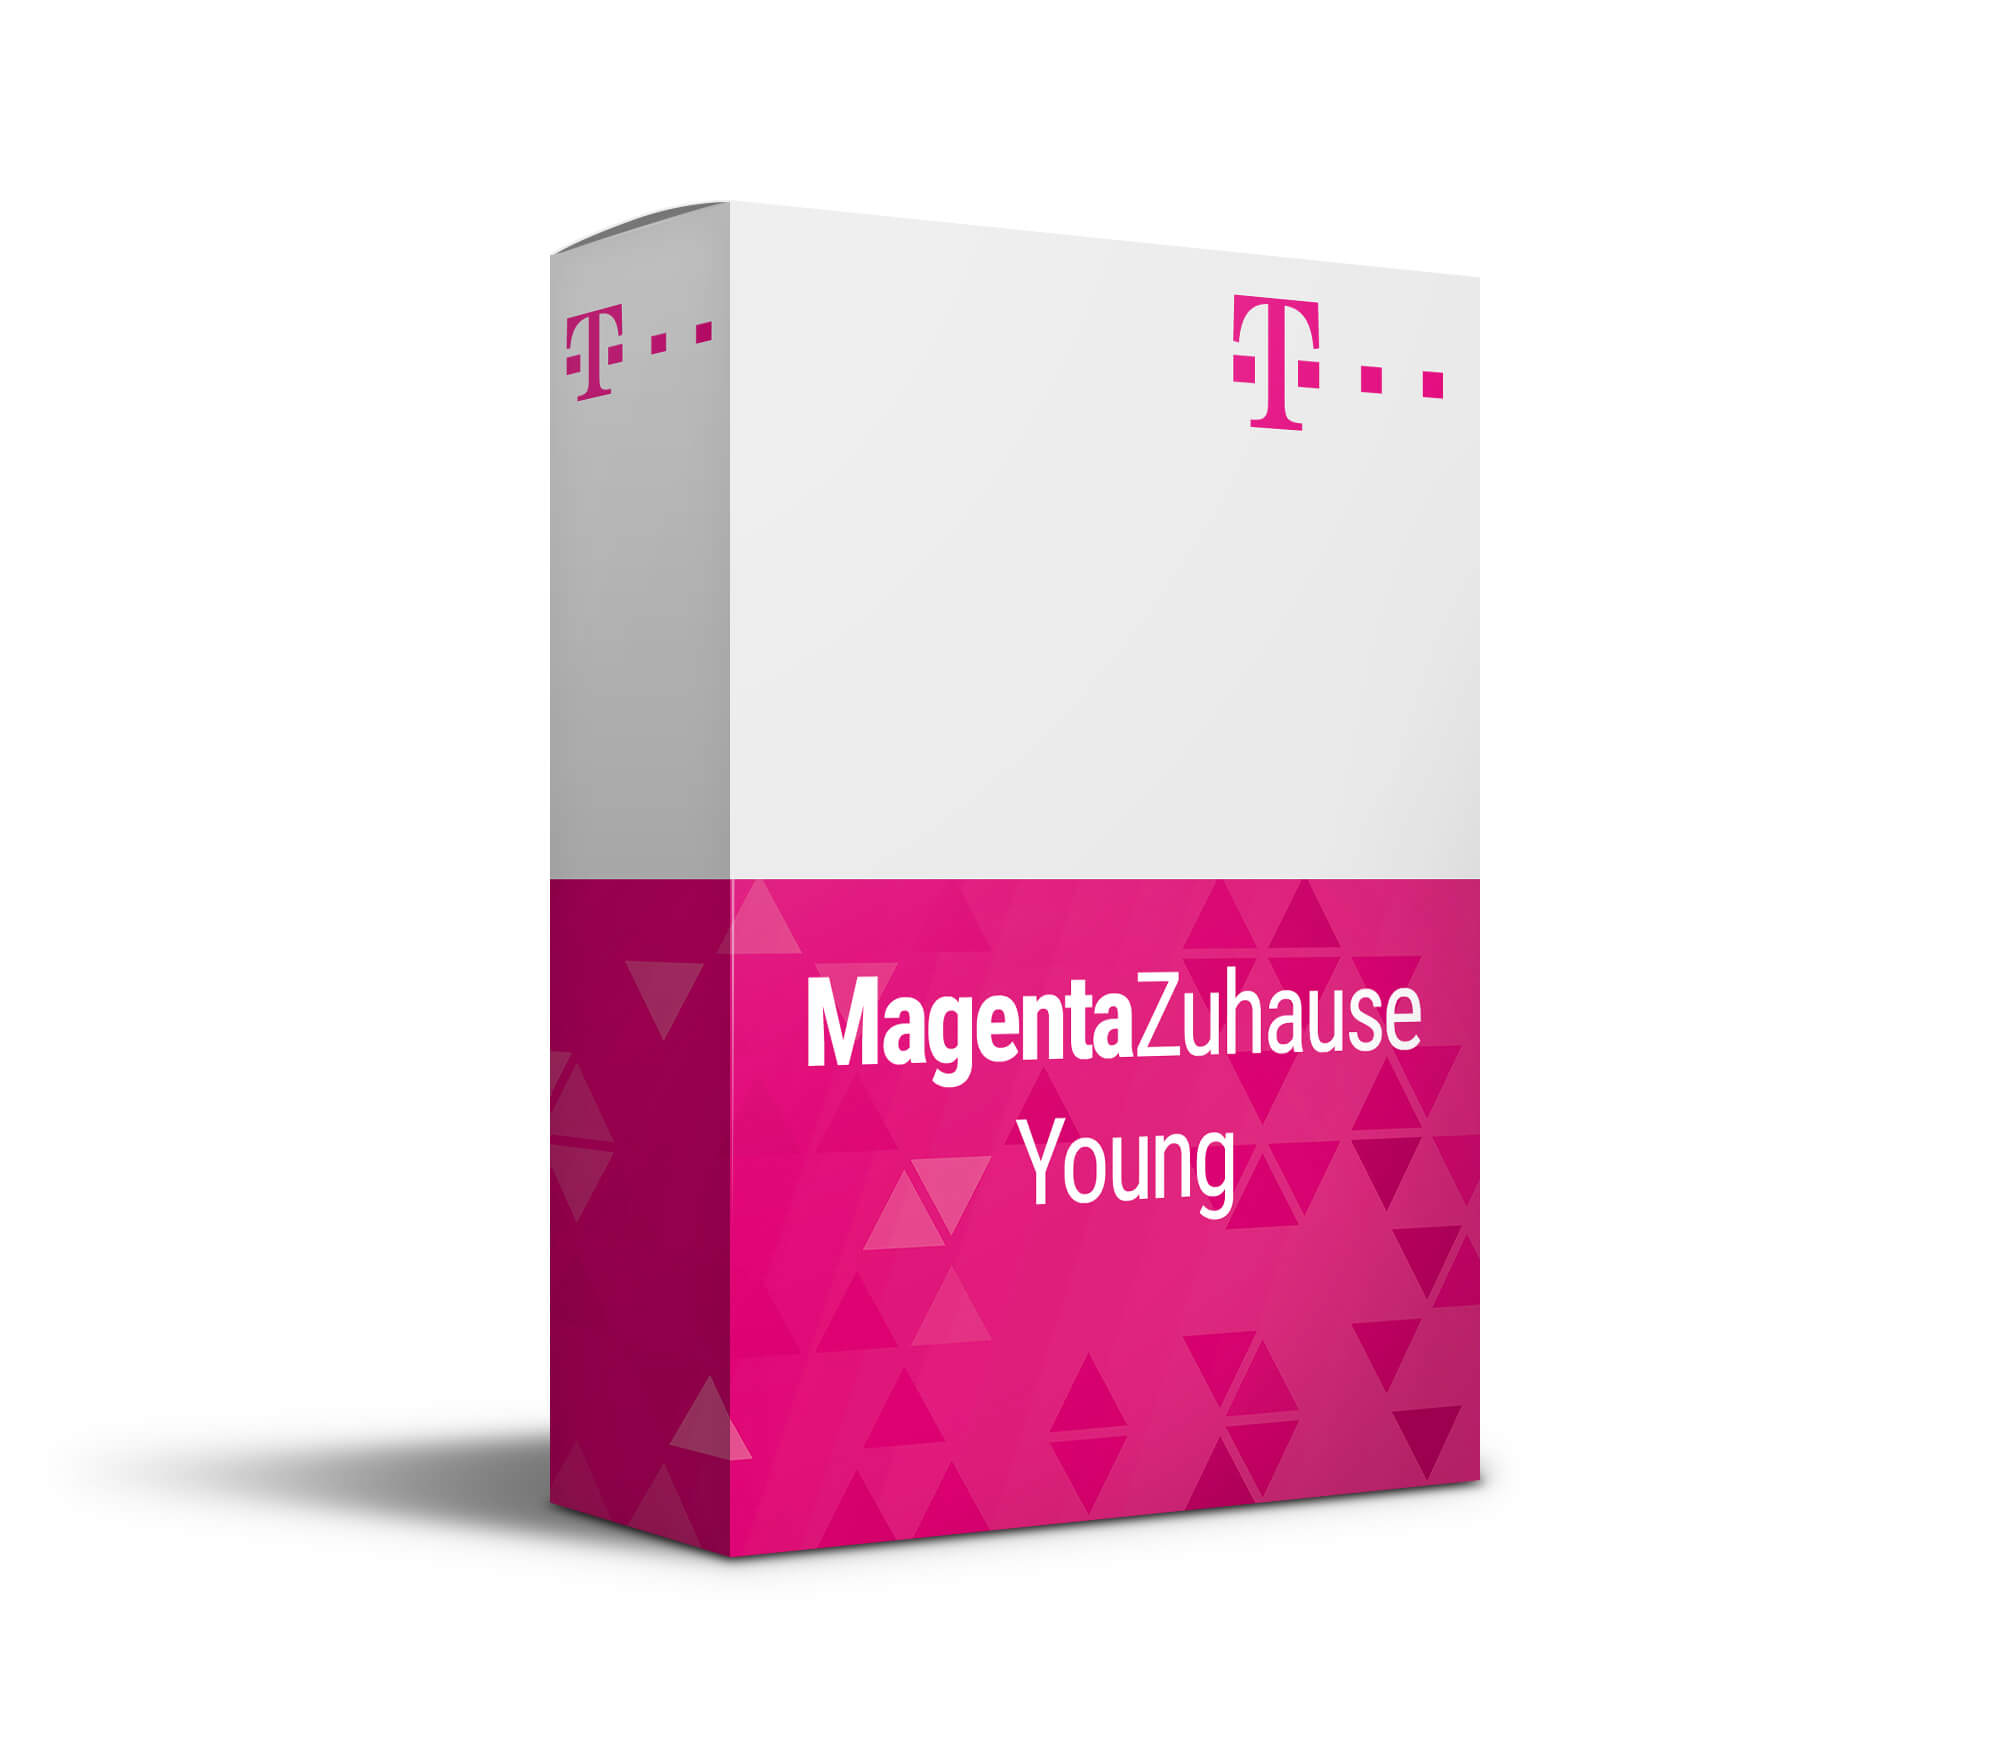 Magenta Zuhause Young